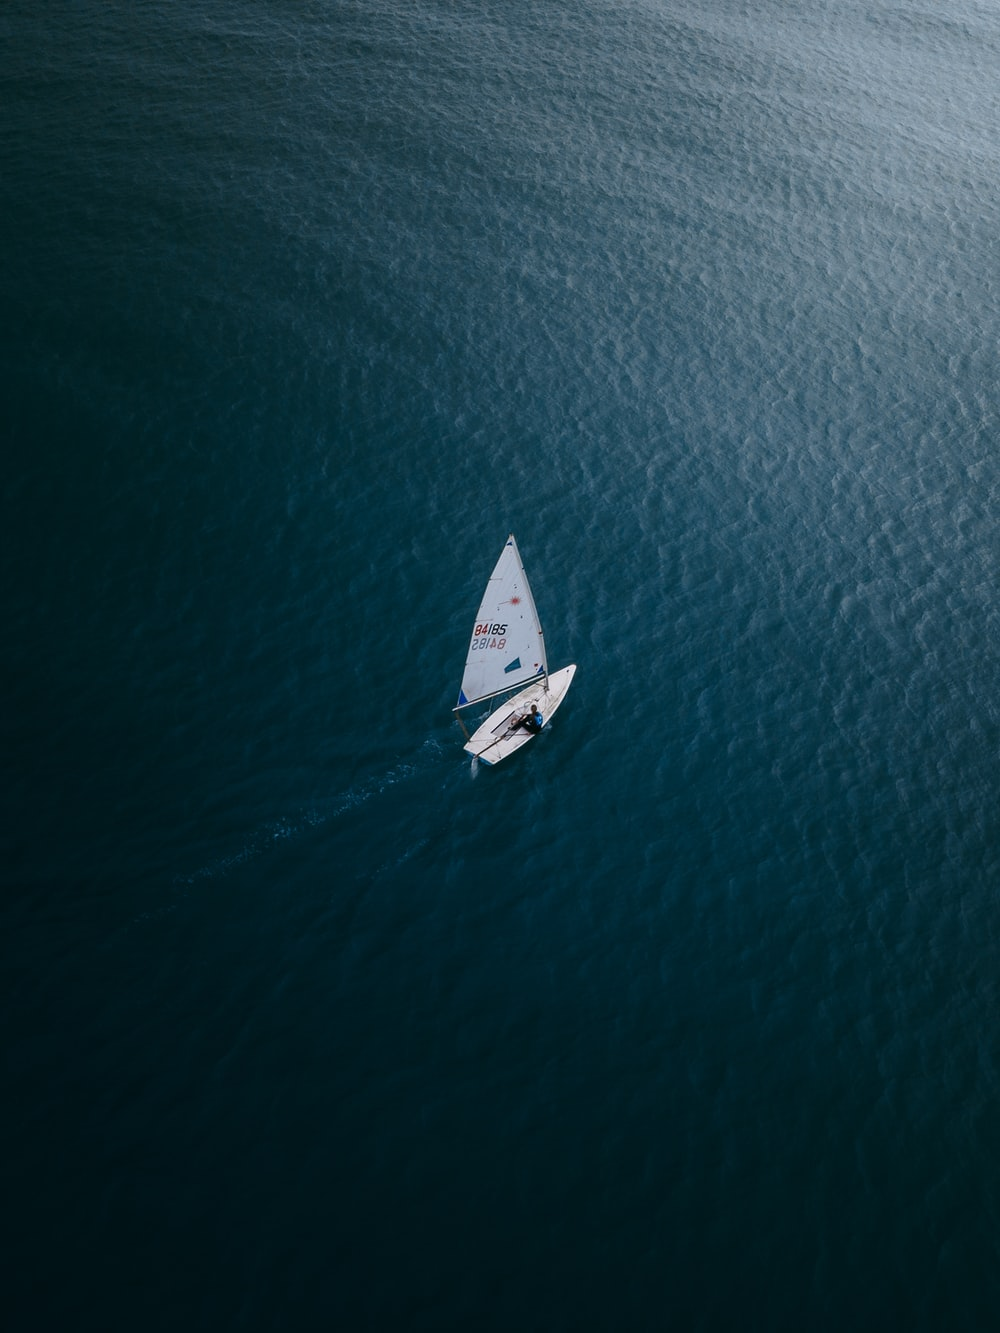 white boat on blue sea during daytime